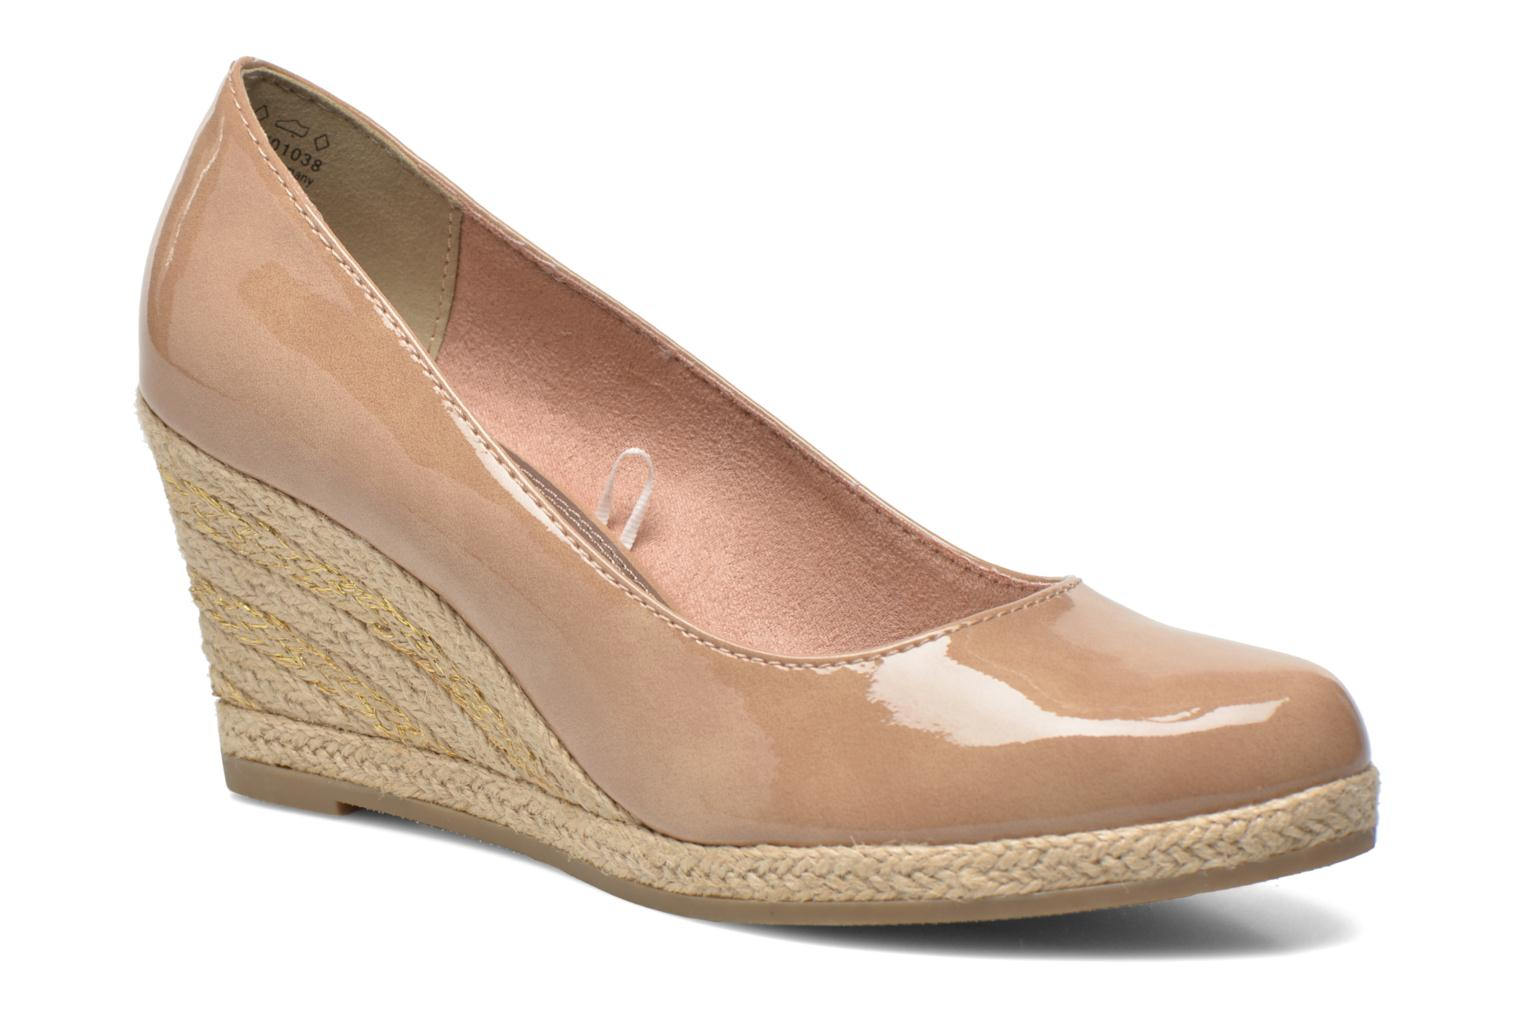 Marques Chaussure femme Marco Tozzi femme Lanily Candy